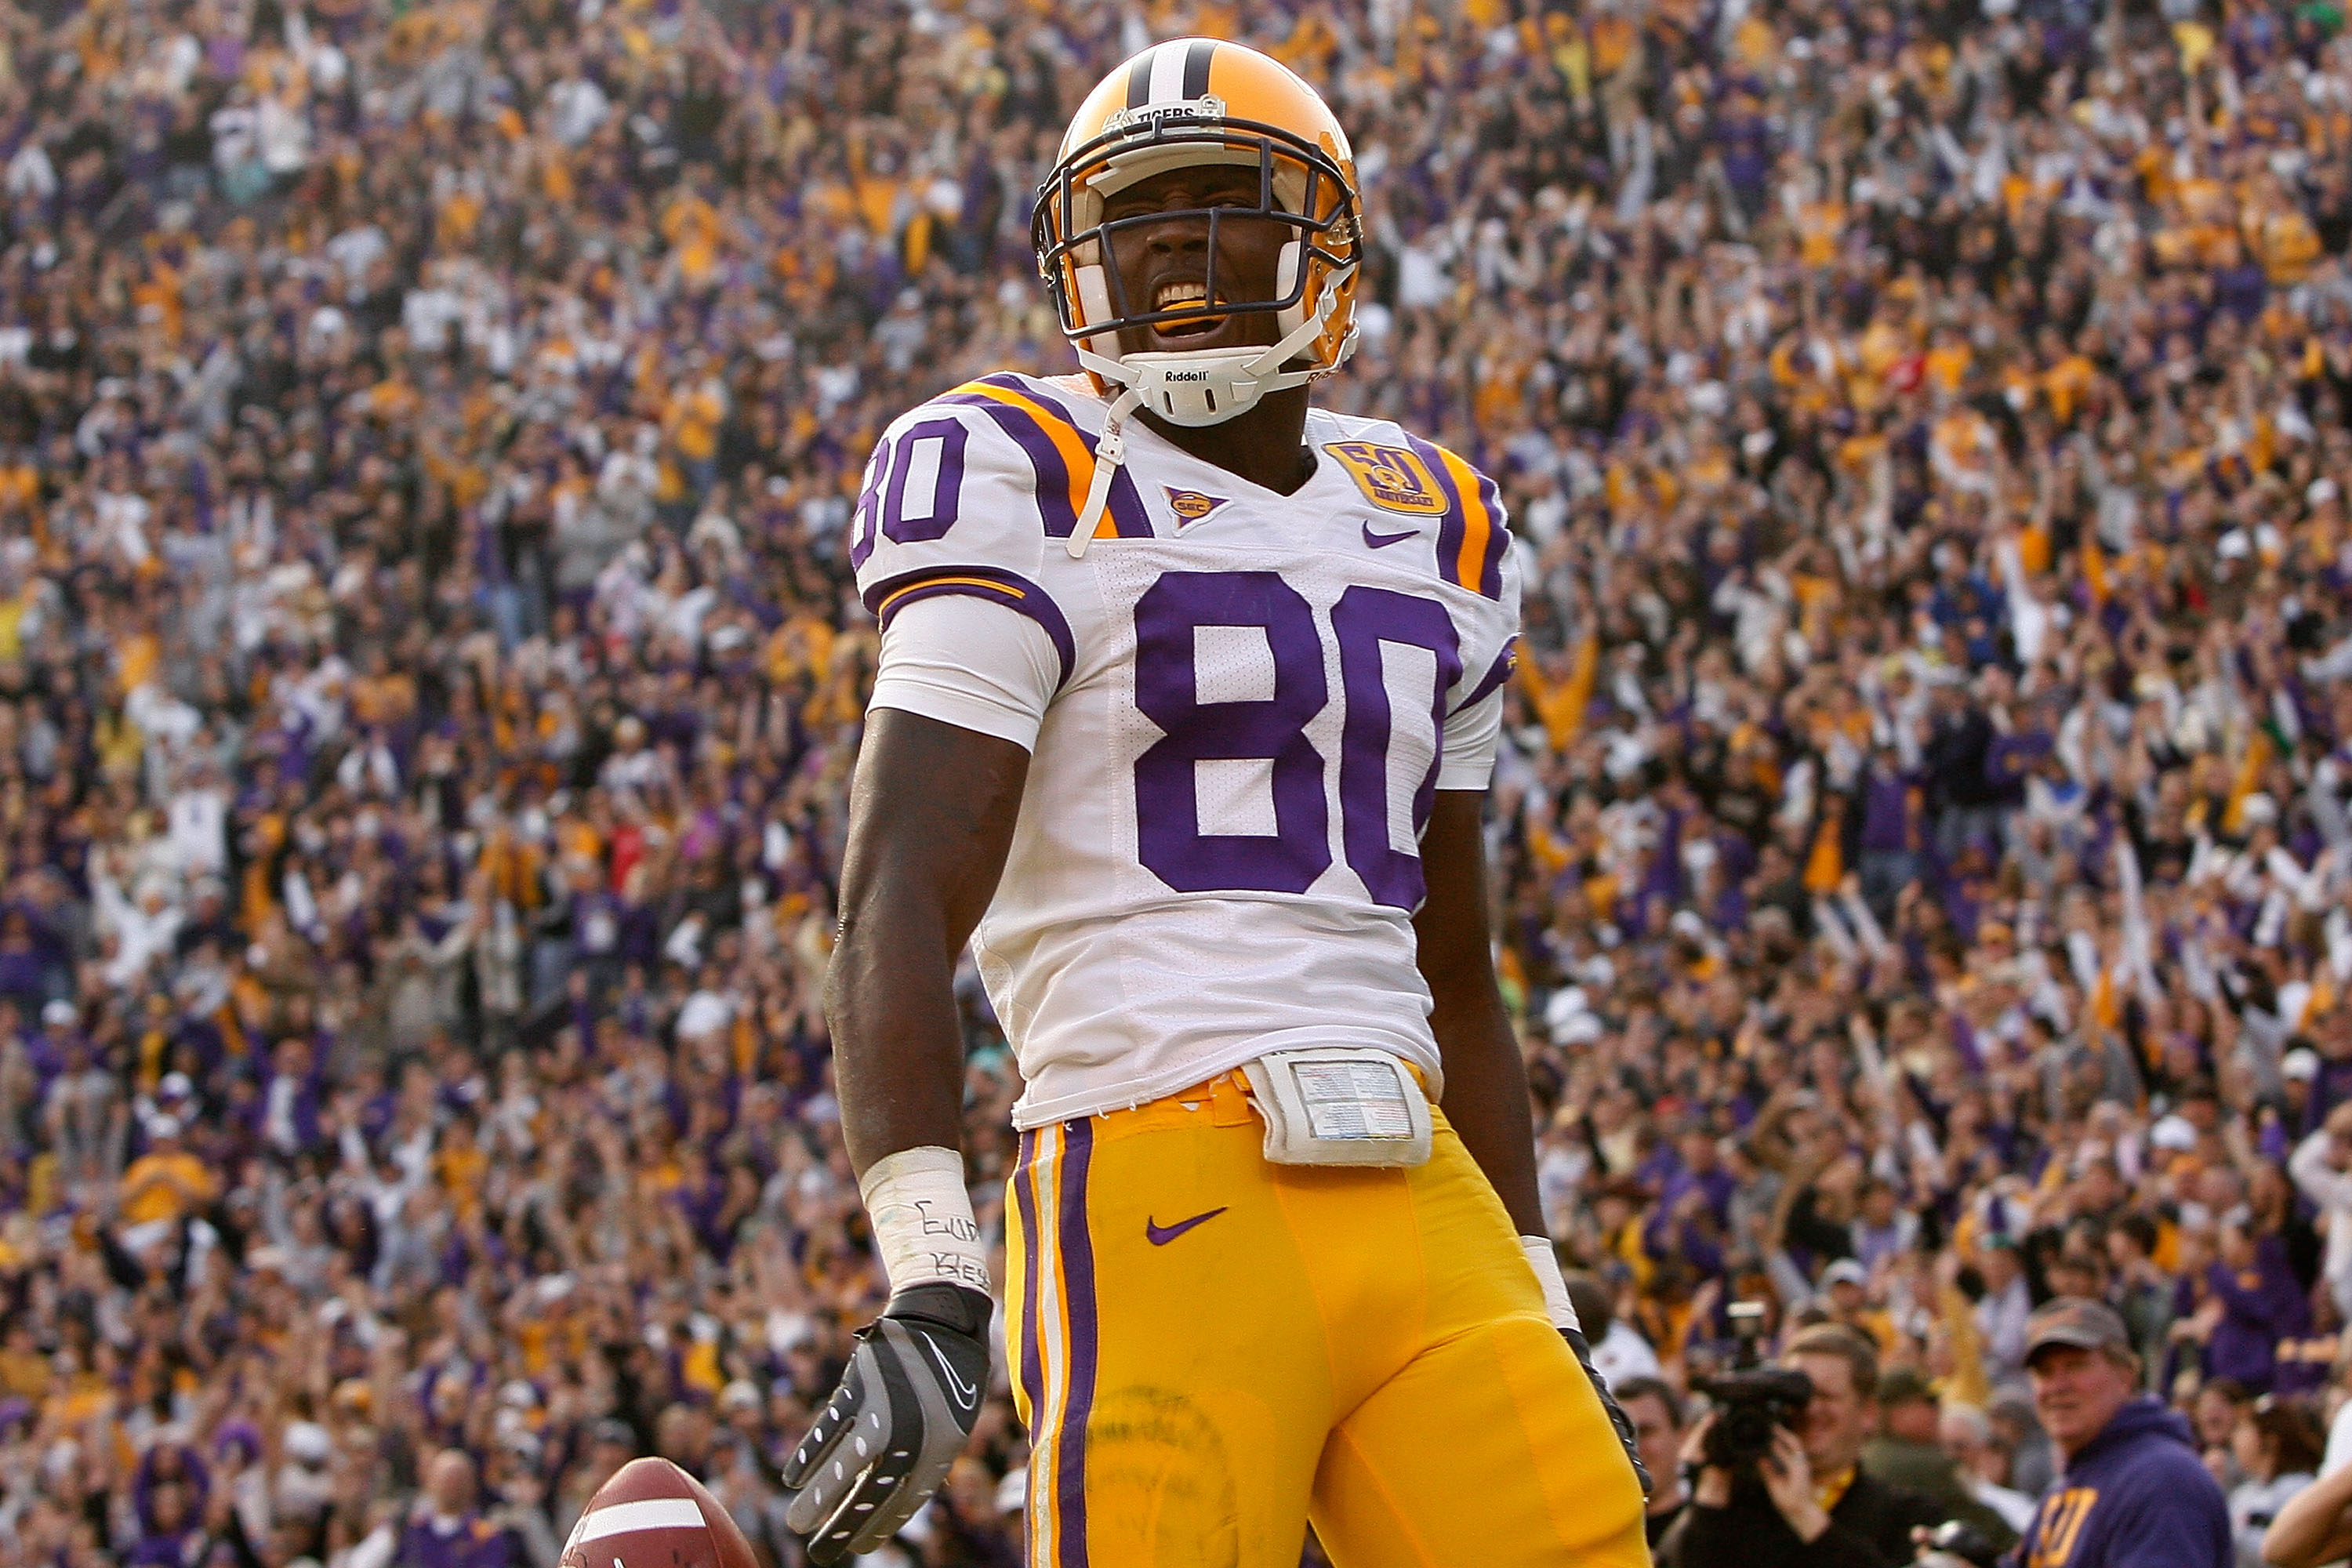 BATON ROUGE, LA - NOVEMBER 22:  Terrance Toliver #80 of the Louisiana State University Tigers celebrates after a touchdown against the Ole Miss Rebels on November 22, 2008 at Tiger Stadium in Baton Rouge, Louisiana.  (Photo by Chris Graythen/Getty Images)